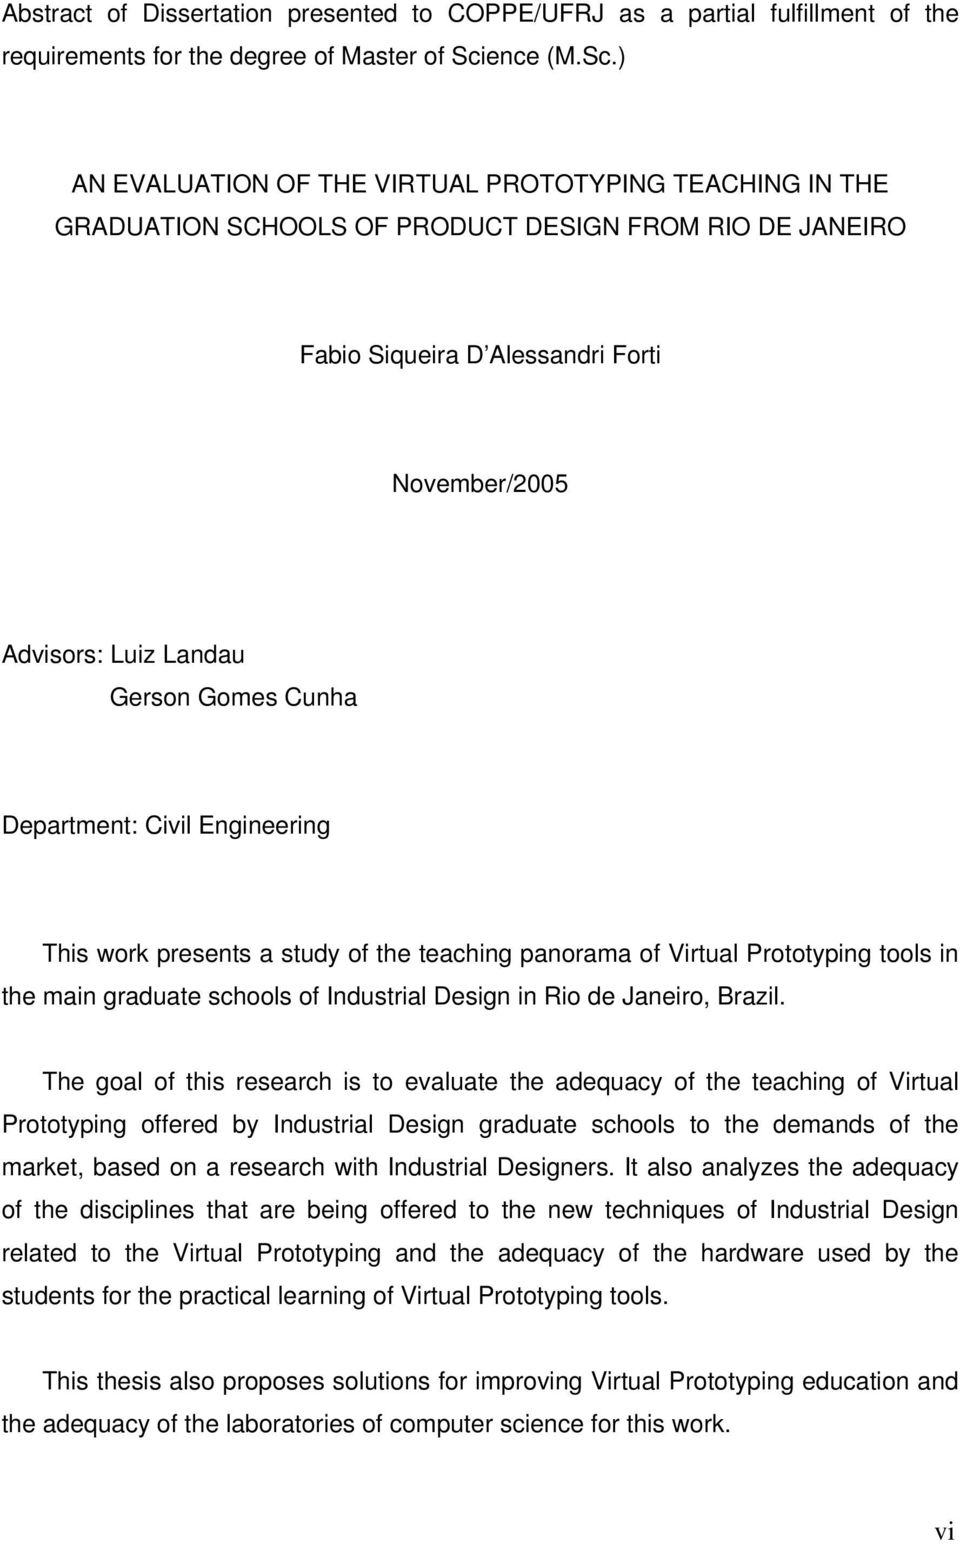 ) AN EVALUATION OF THE VIRTUAL PROTOTYPING TEACHING IN THE GRADUATION SCHOOLS OF PRODUCT DESIGN FROM RIO DE JANEIRO Fabio Siqueira D Alessandri Forti November/2005 Advisors: Luiz Landau Gerson Gomes